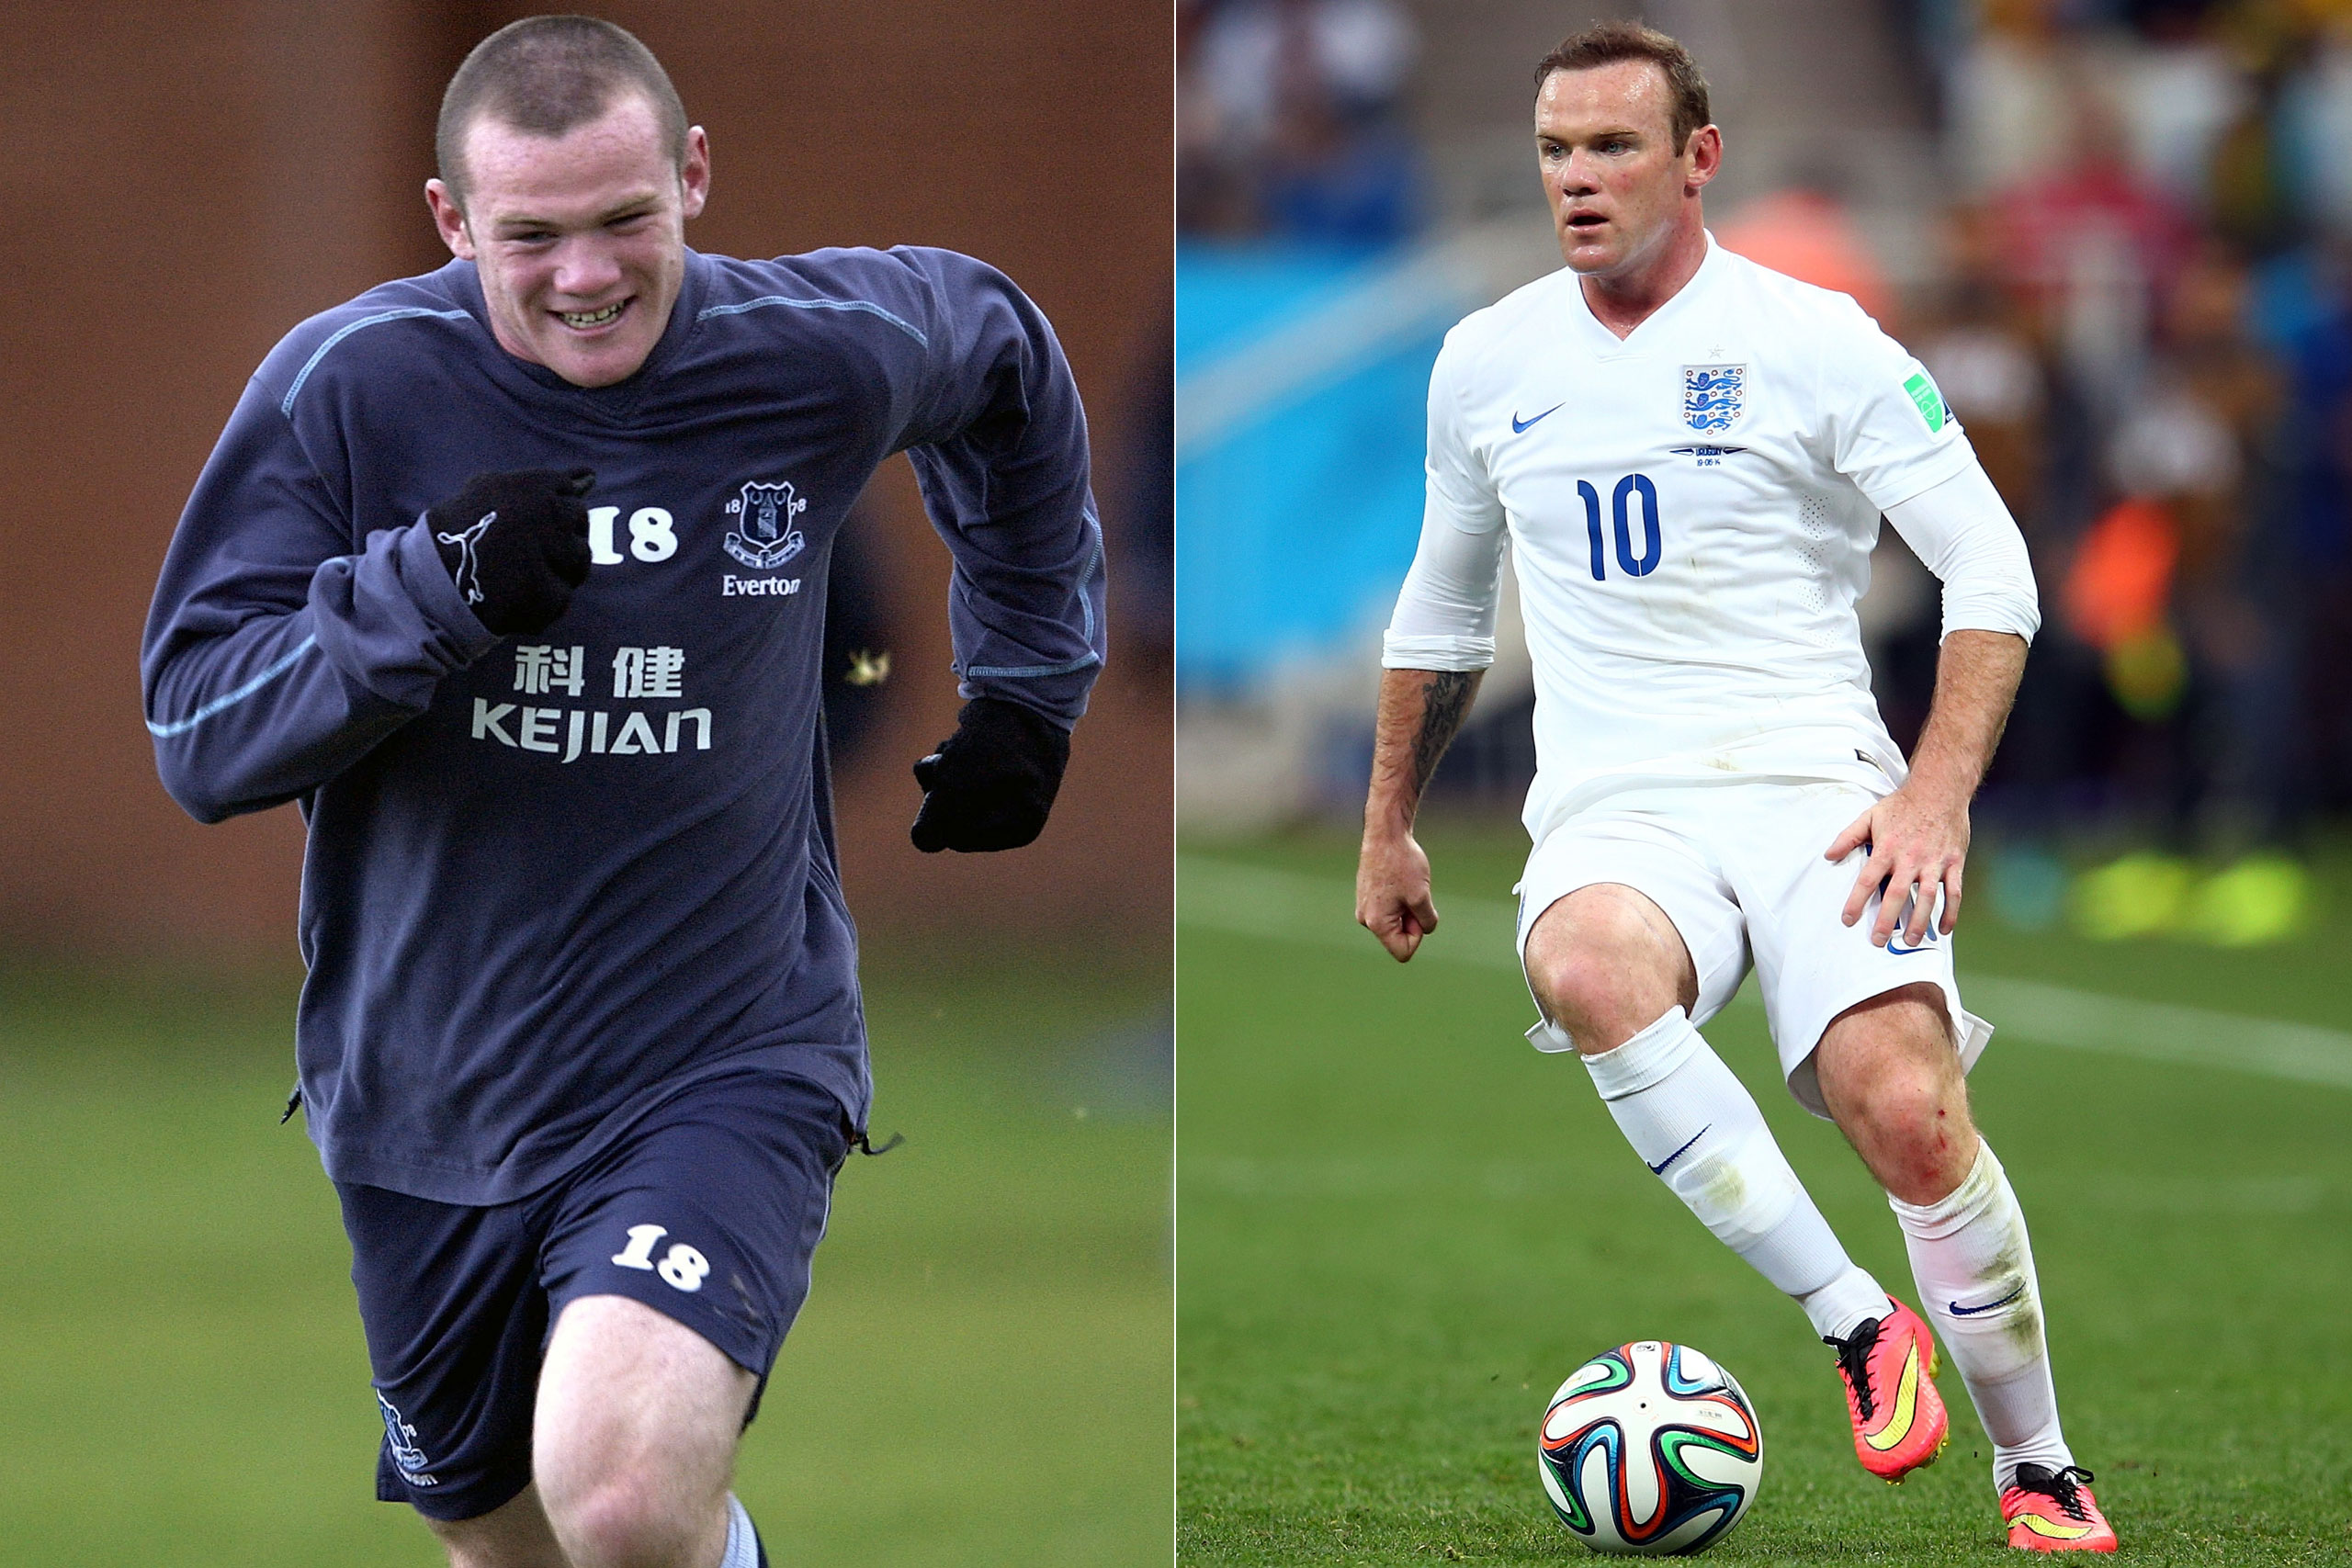 Left: Wayne Rooney in 2002; Right: Wayne Rooney playing for England at the FIFA World Cup in Brazil, 2014.